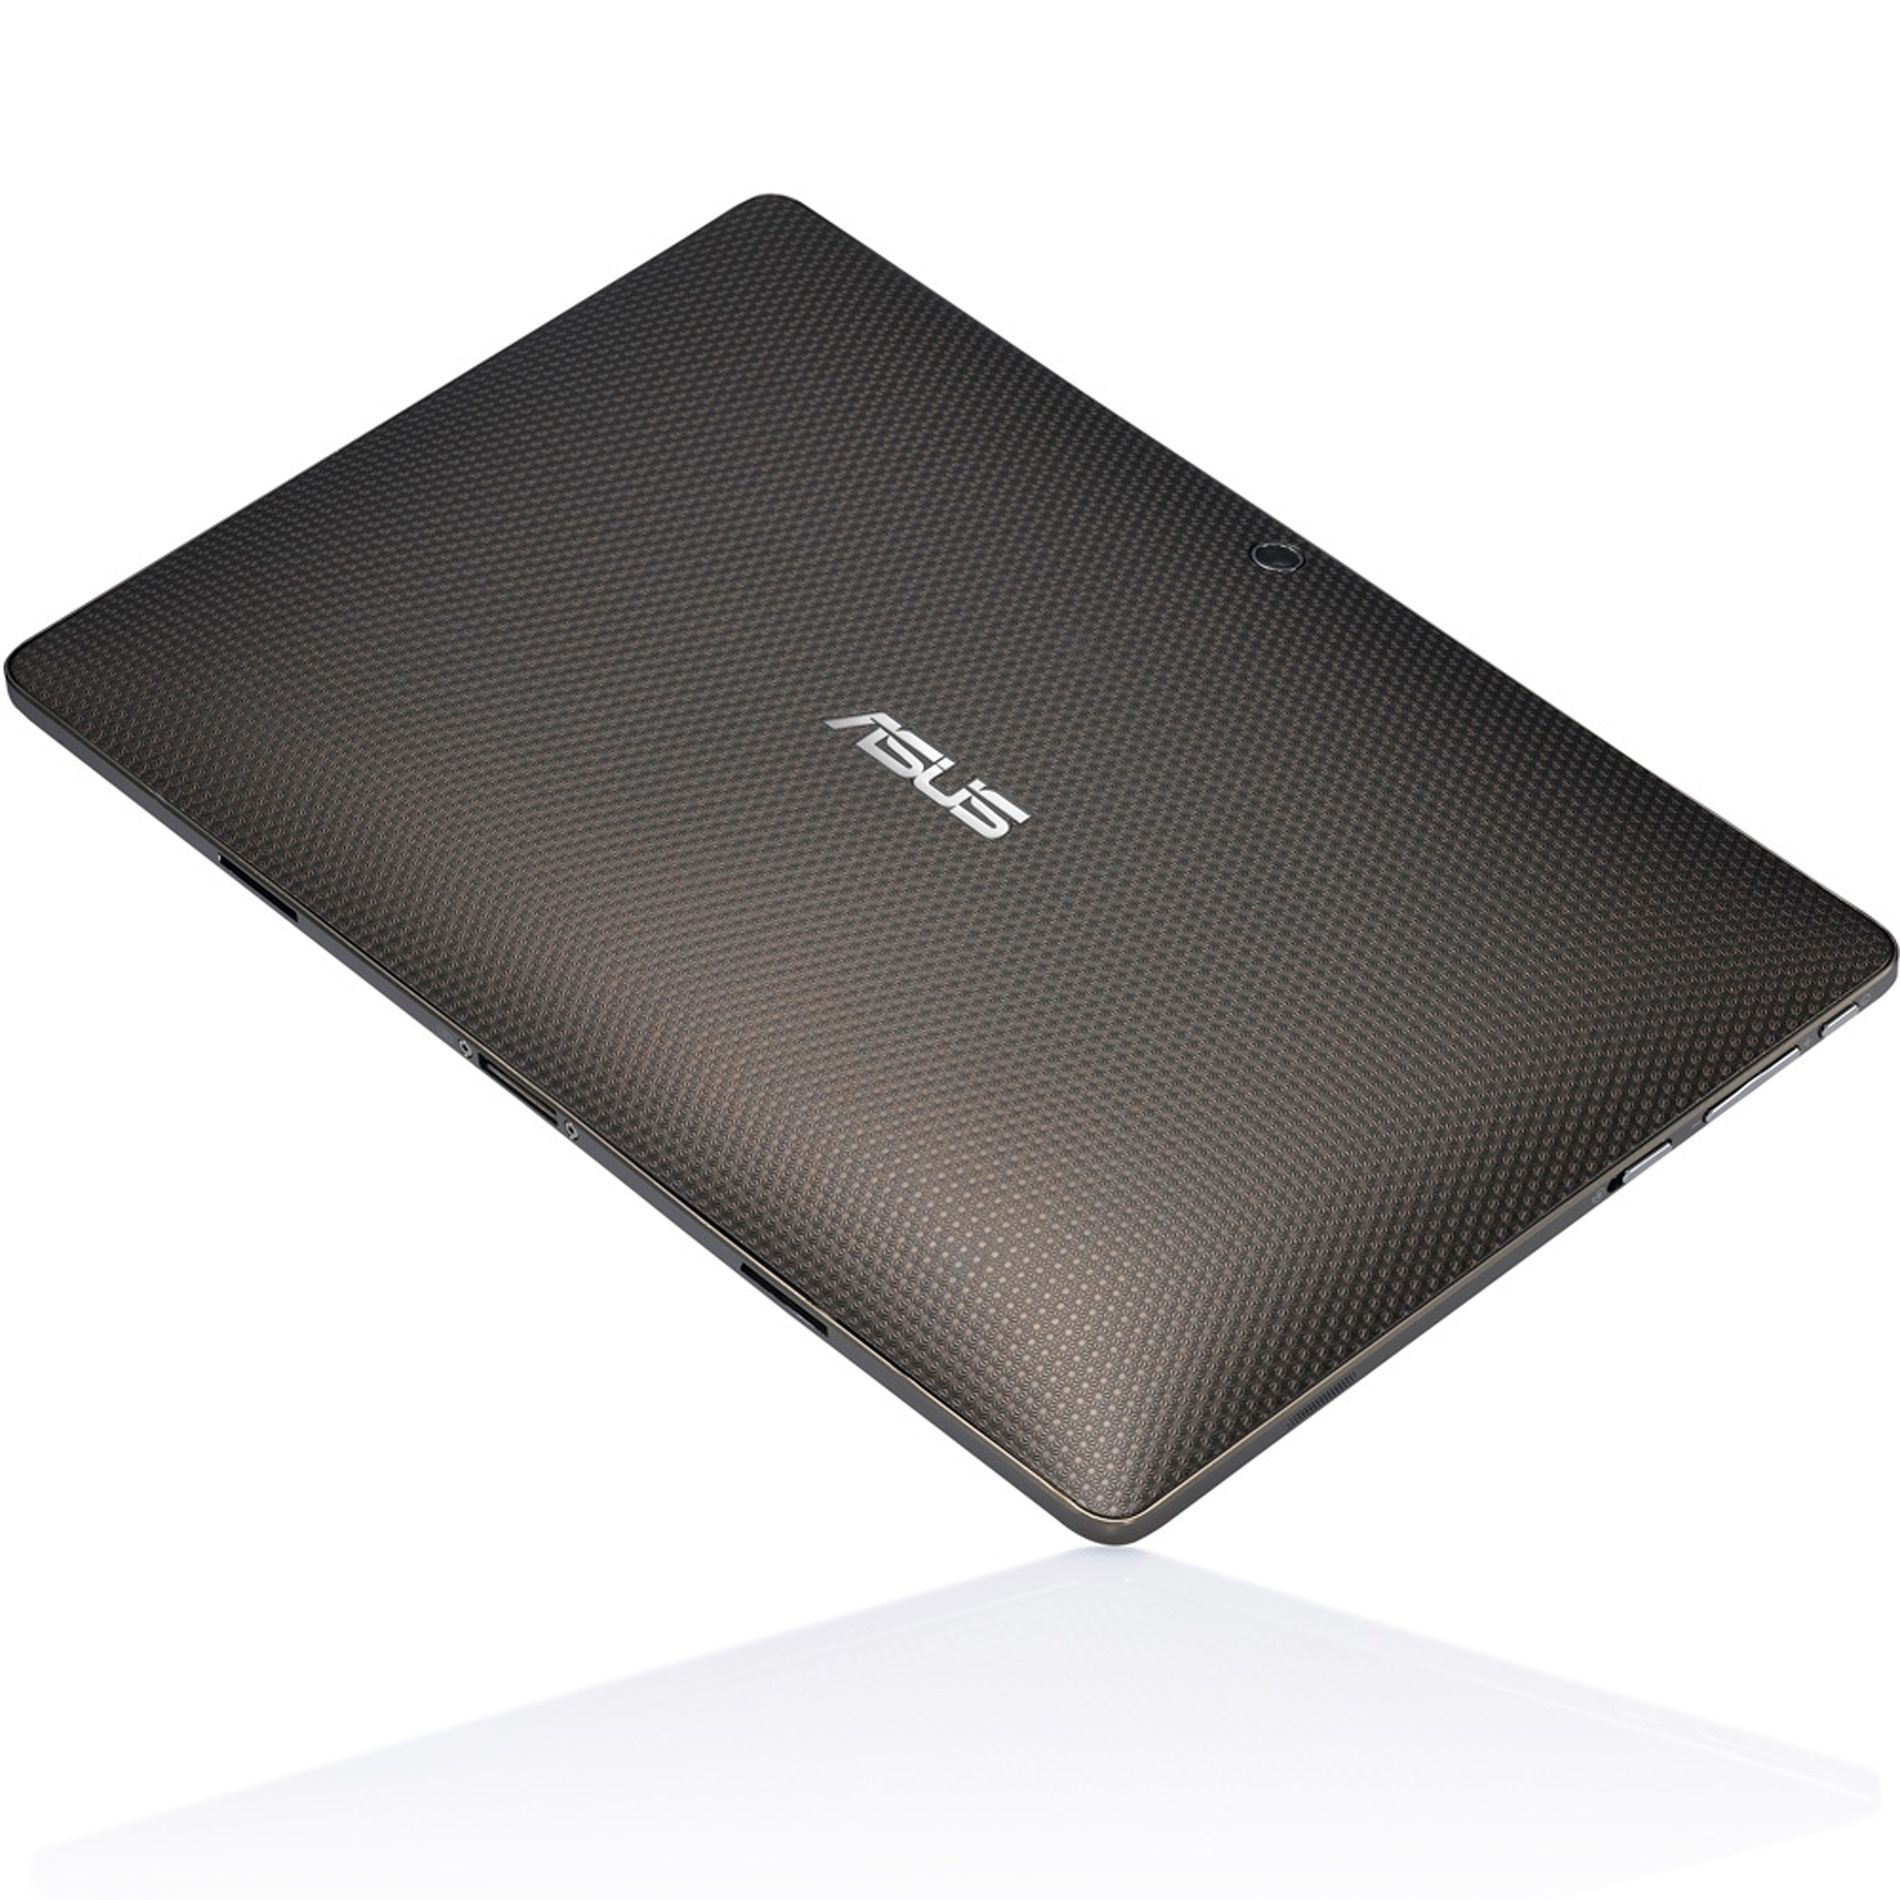 Asus TF101-A1 Tablet PC